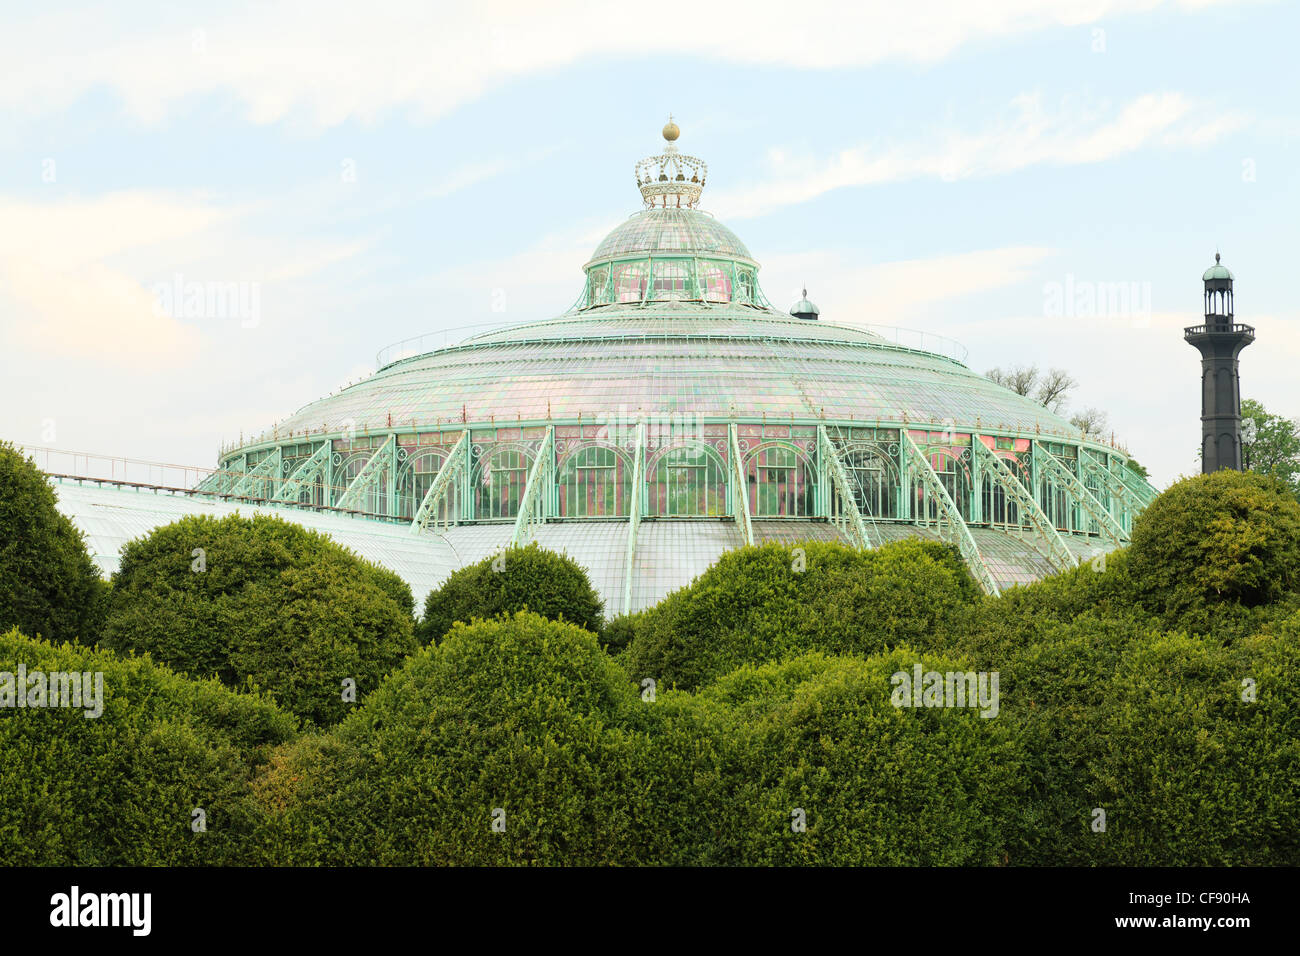 Belgium, Brussels, Laeken, the royal castle domain, the greenhouses of Laeken in spring, the Winter Garden. - Stock Image